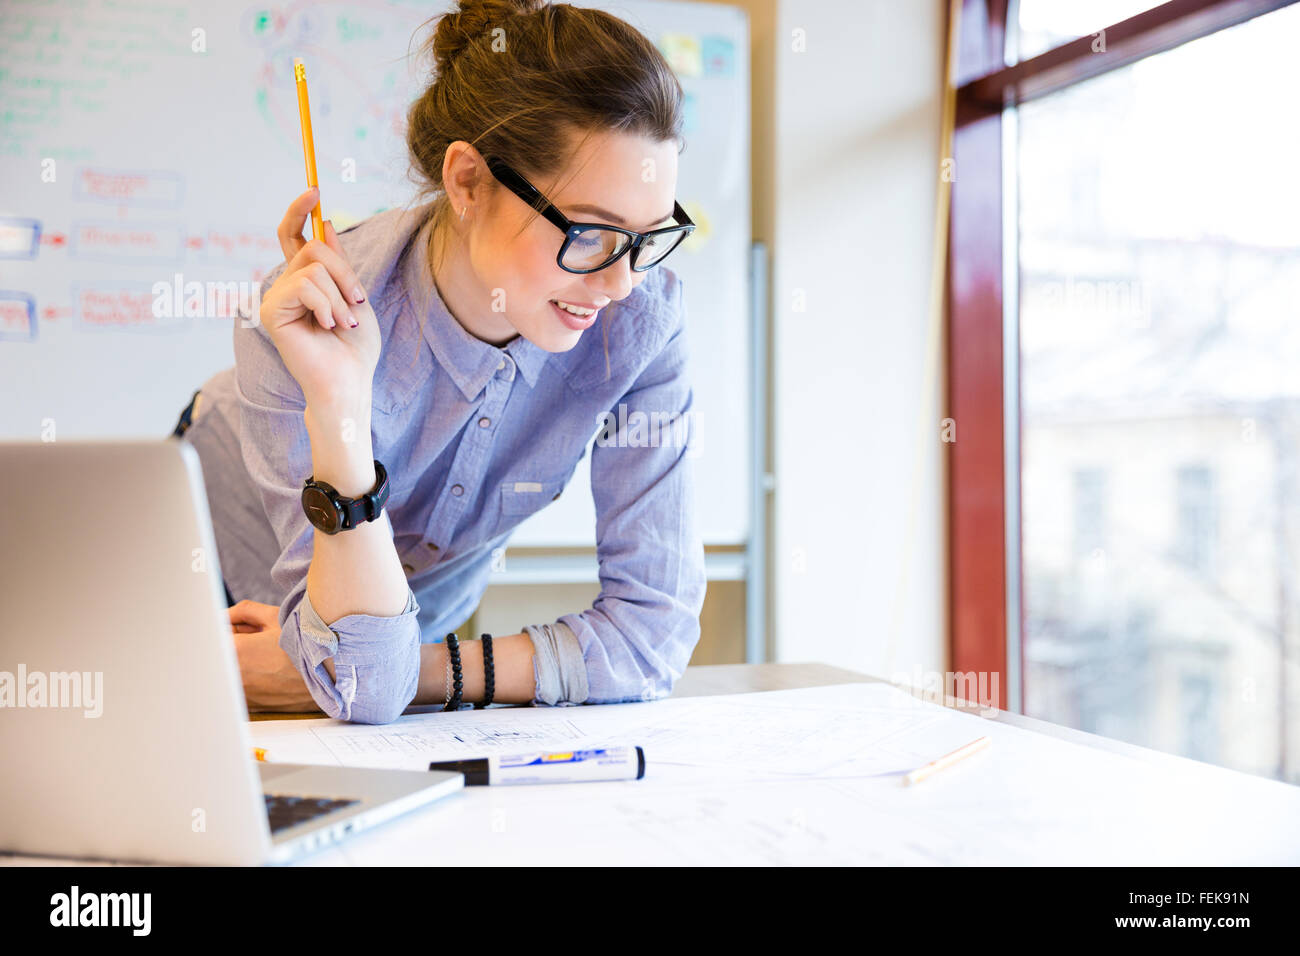 Happy young woman in glasses standing near the window in office and working with blueprint - Stock Image